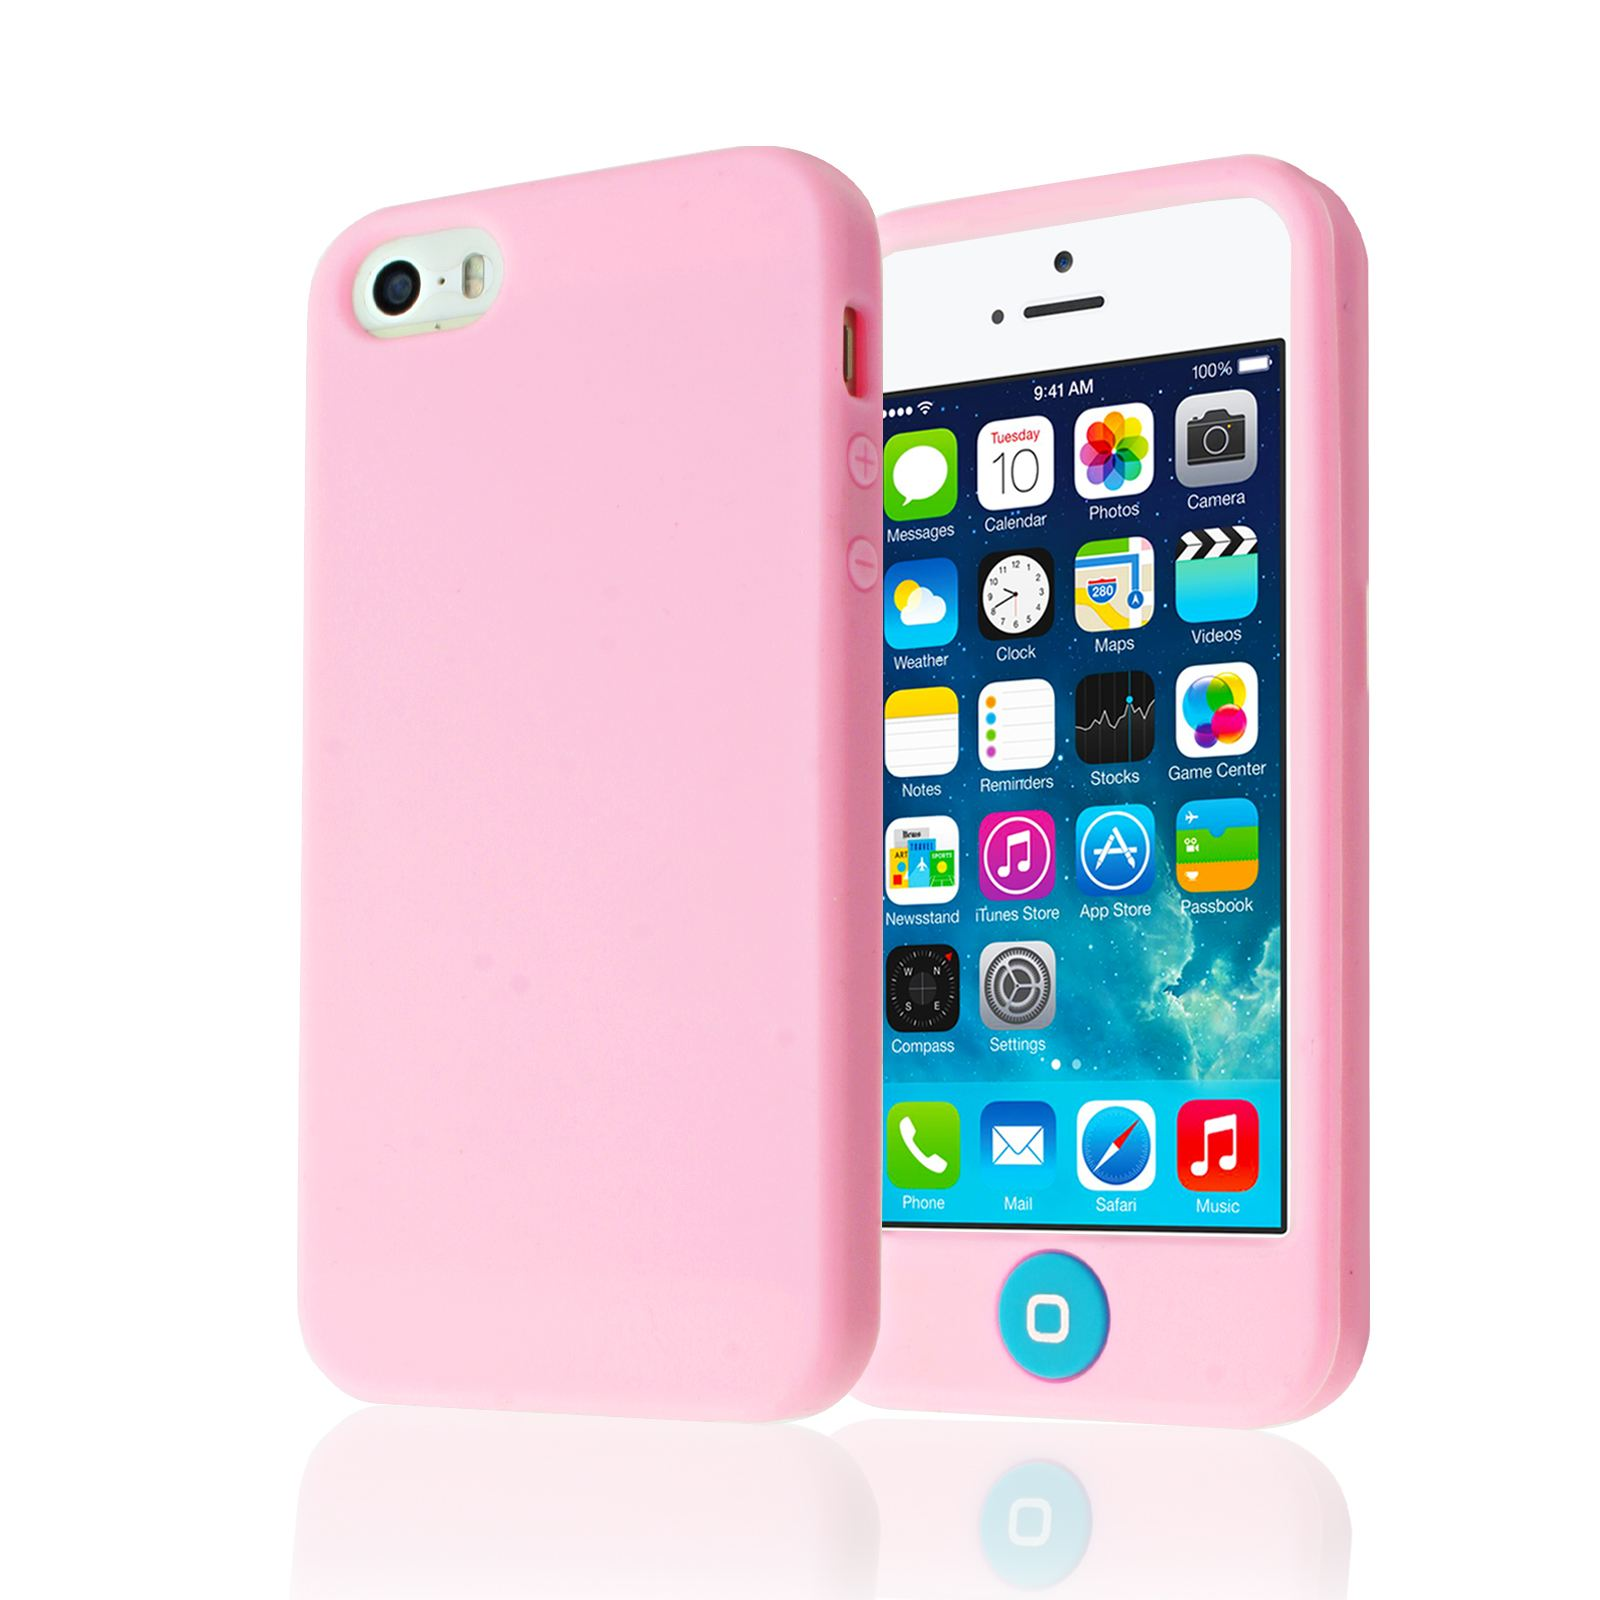 iphone 5s silicone case soft plain silicone with big buttons back guard cover 8771